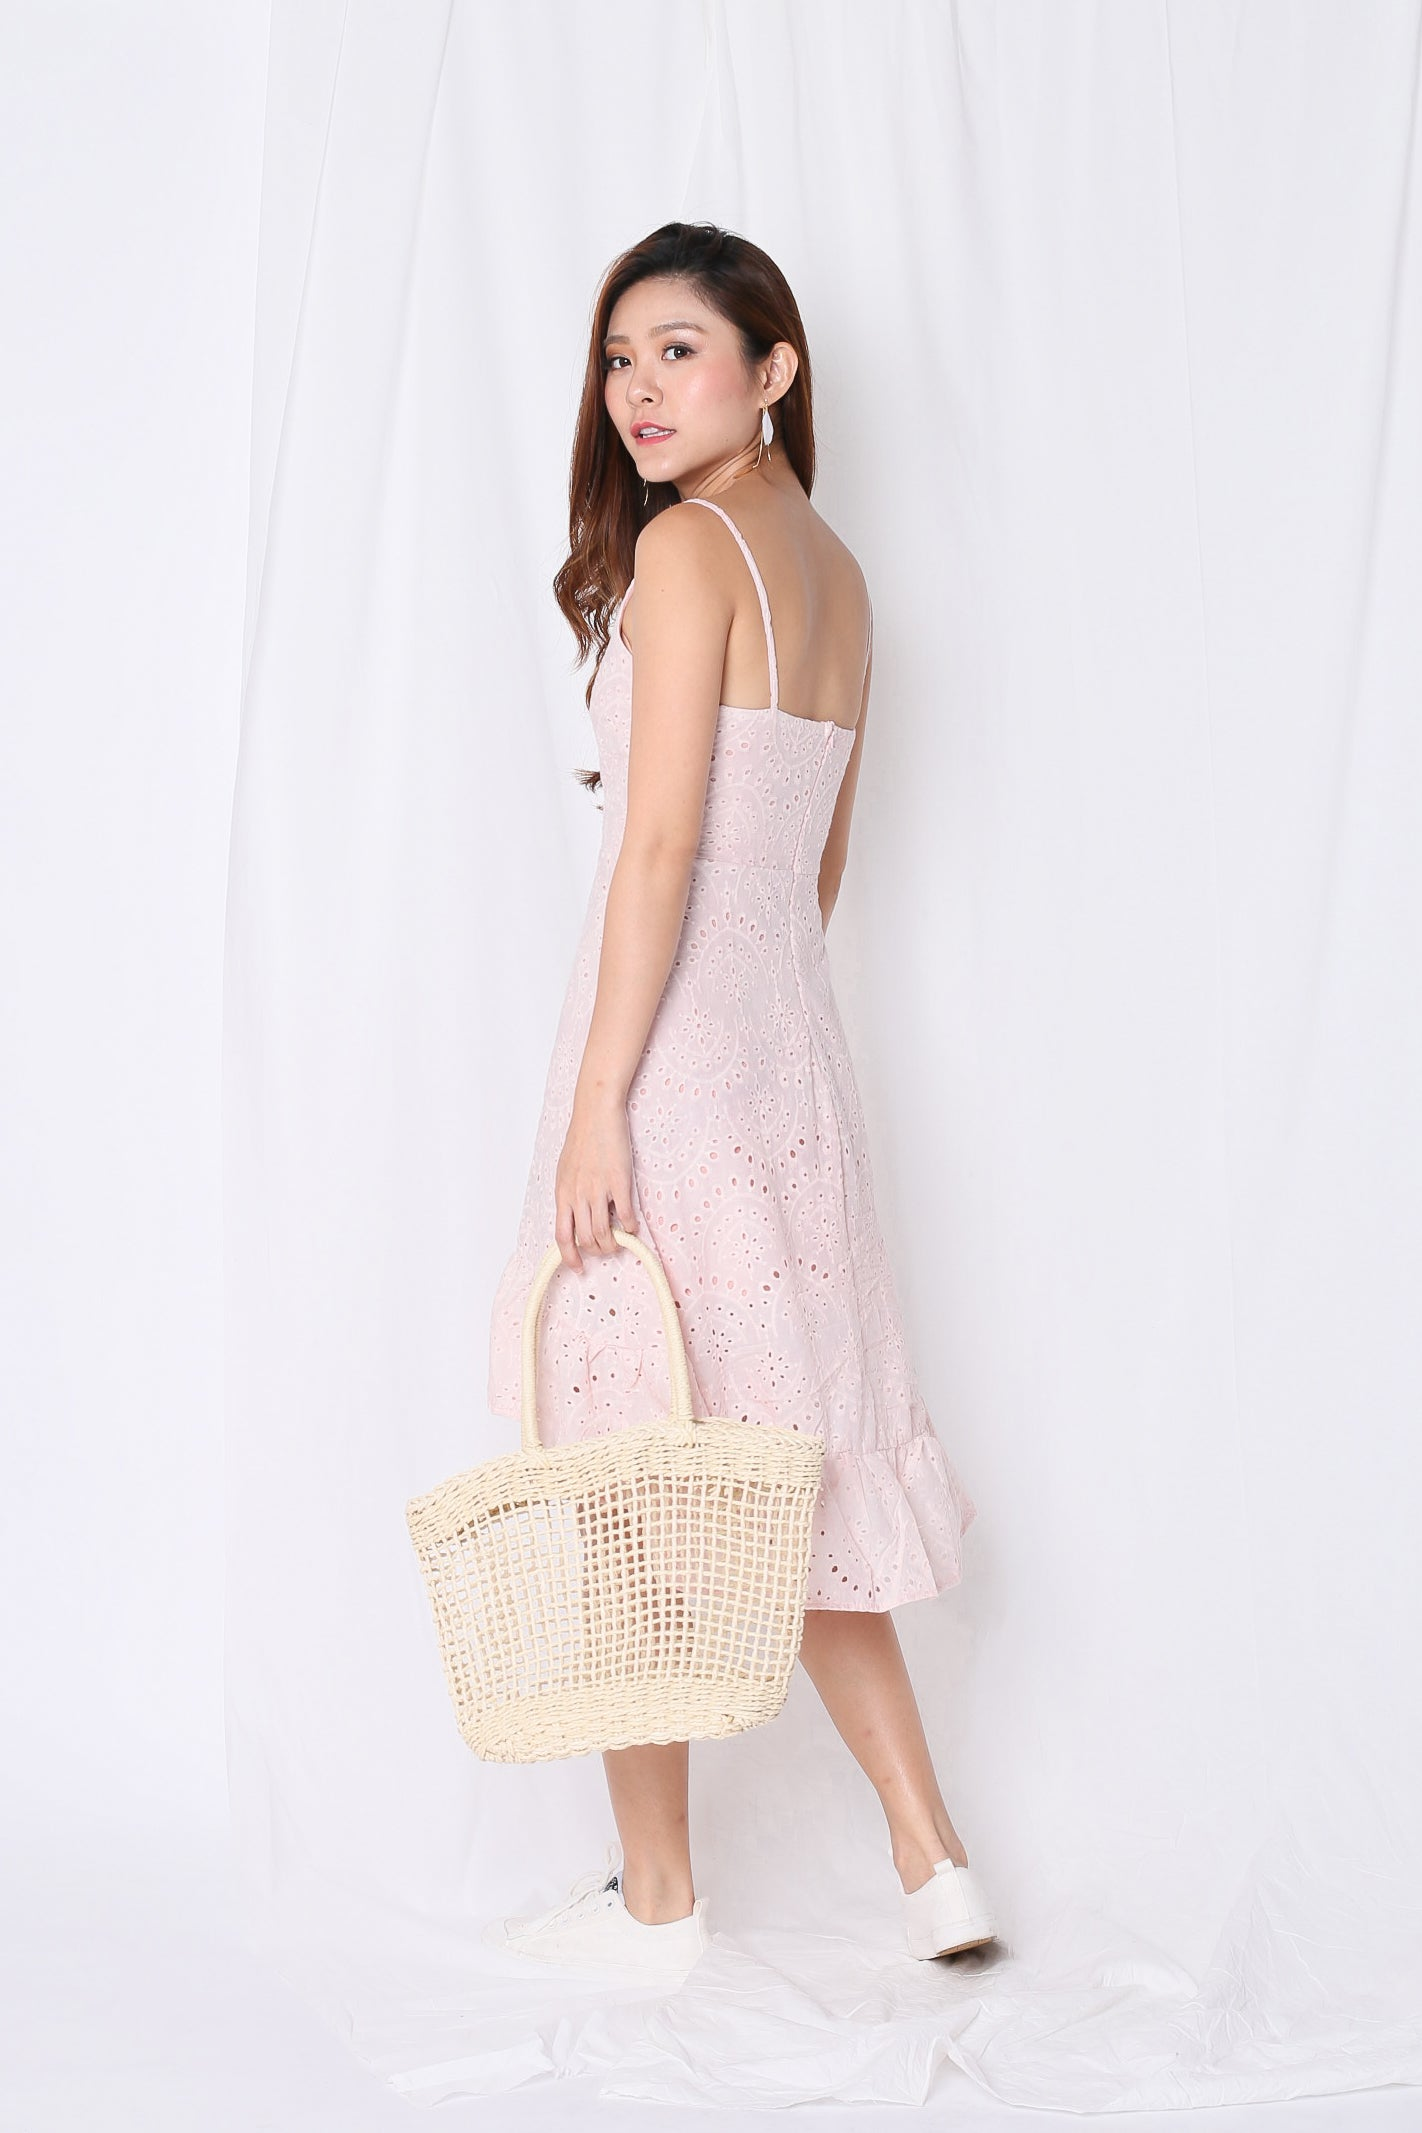 *TPZ* (PREMIUM) SHEVELLE EYELET DRESS IN BABY PINK